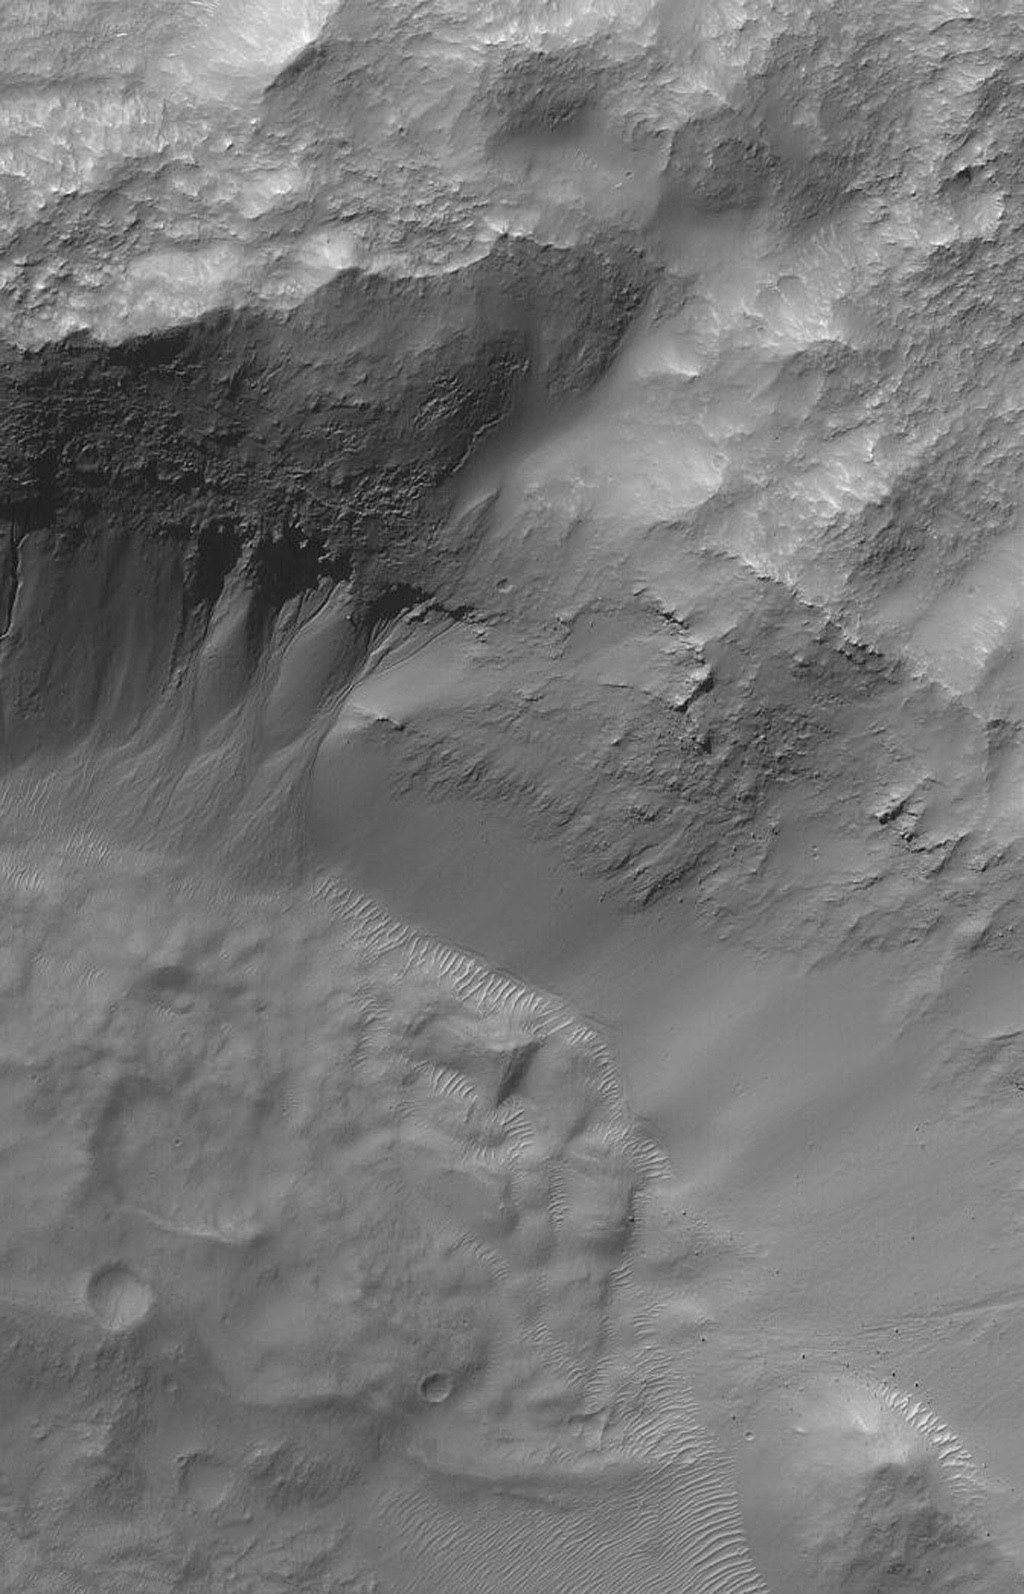 This image from NASA's Mars Global Surveyor shows gullies on the wall of a martian south mid-latitude impact crater. The channels in each gully head beneath an eroding overhang of layered rock.